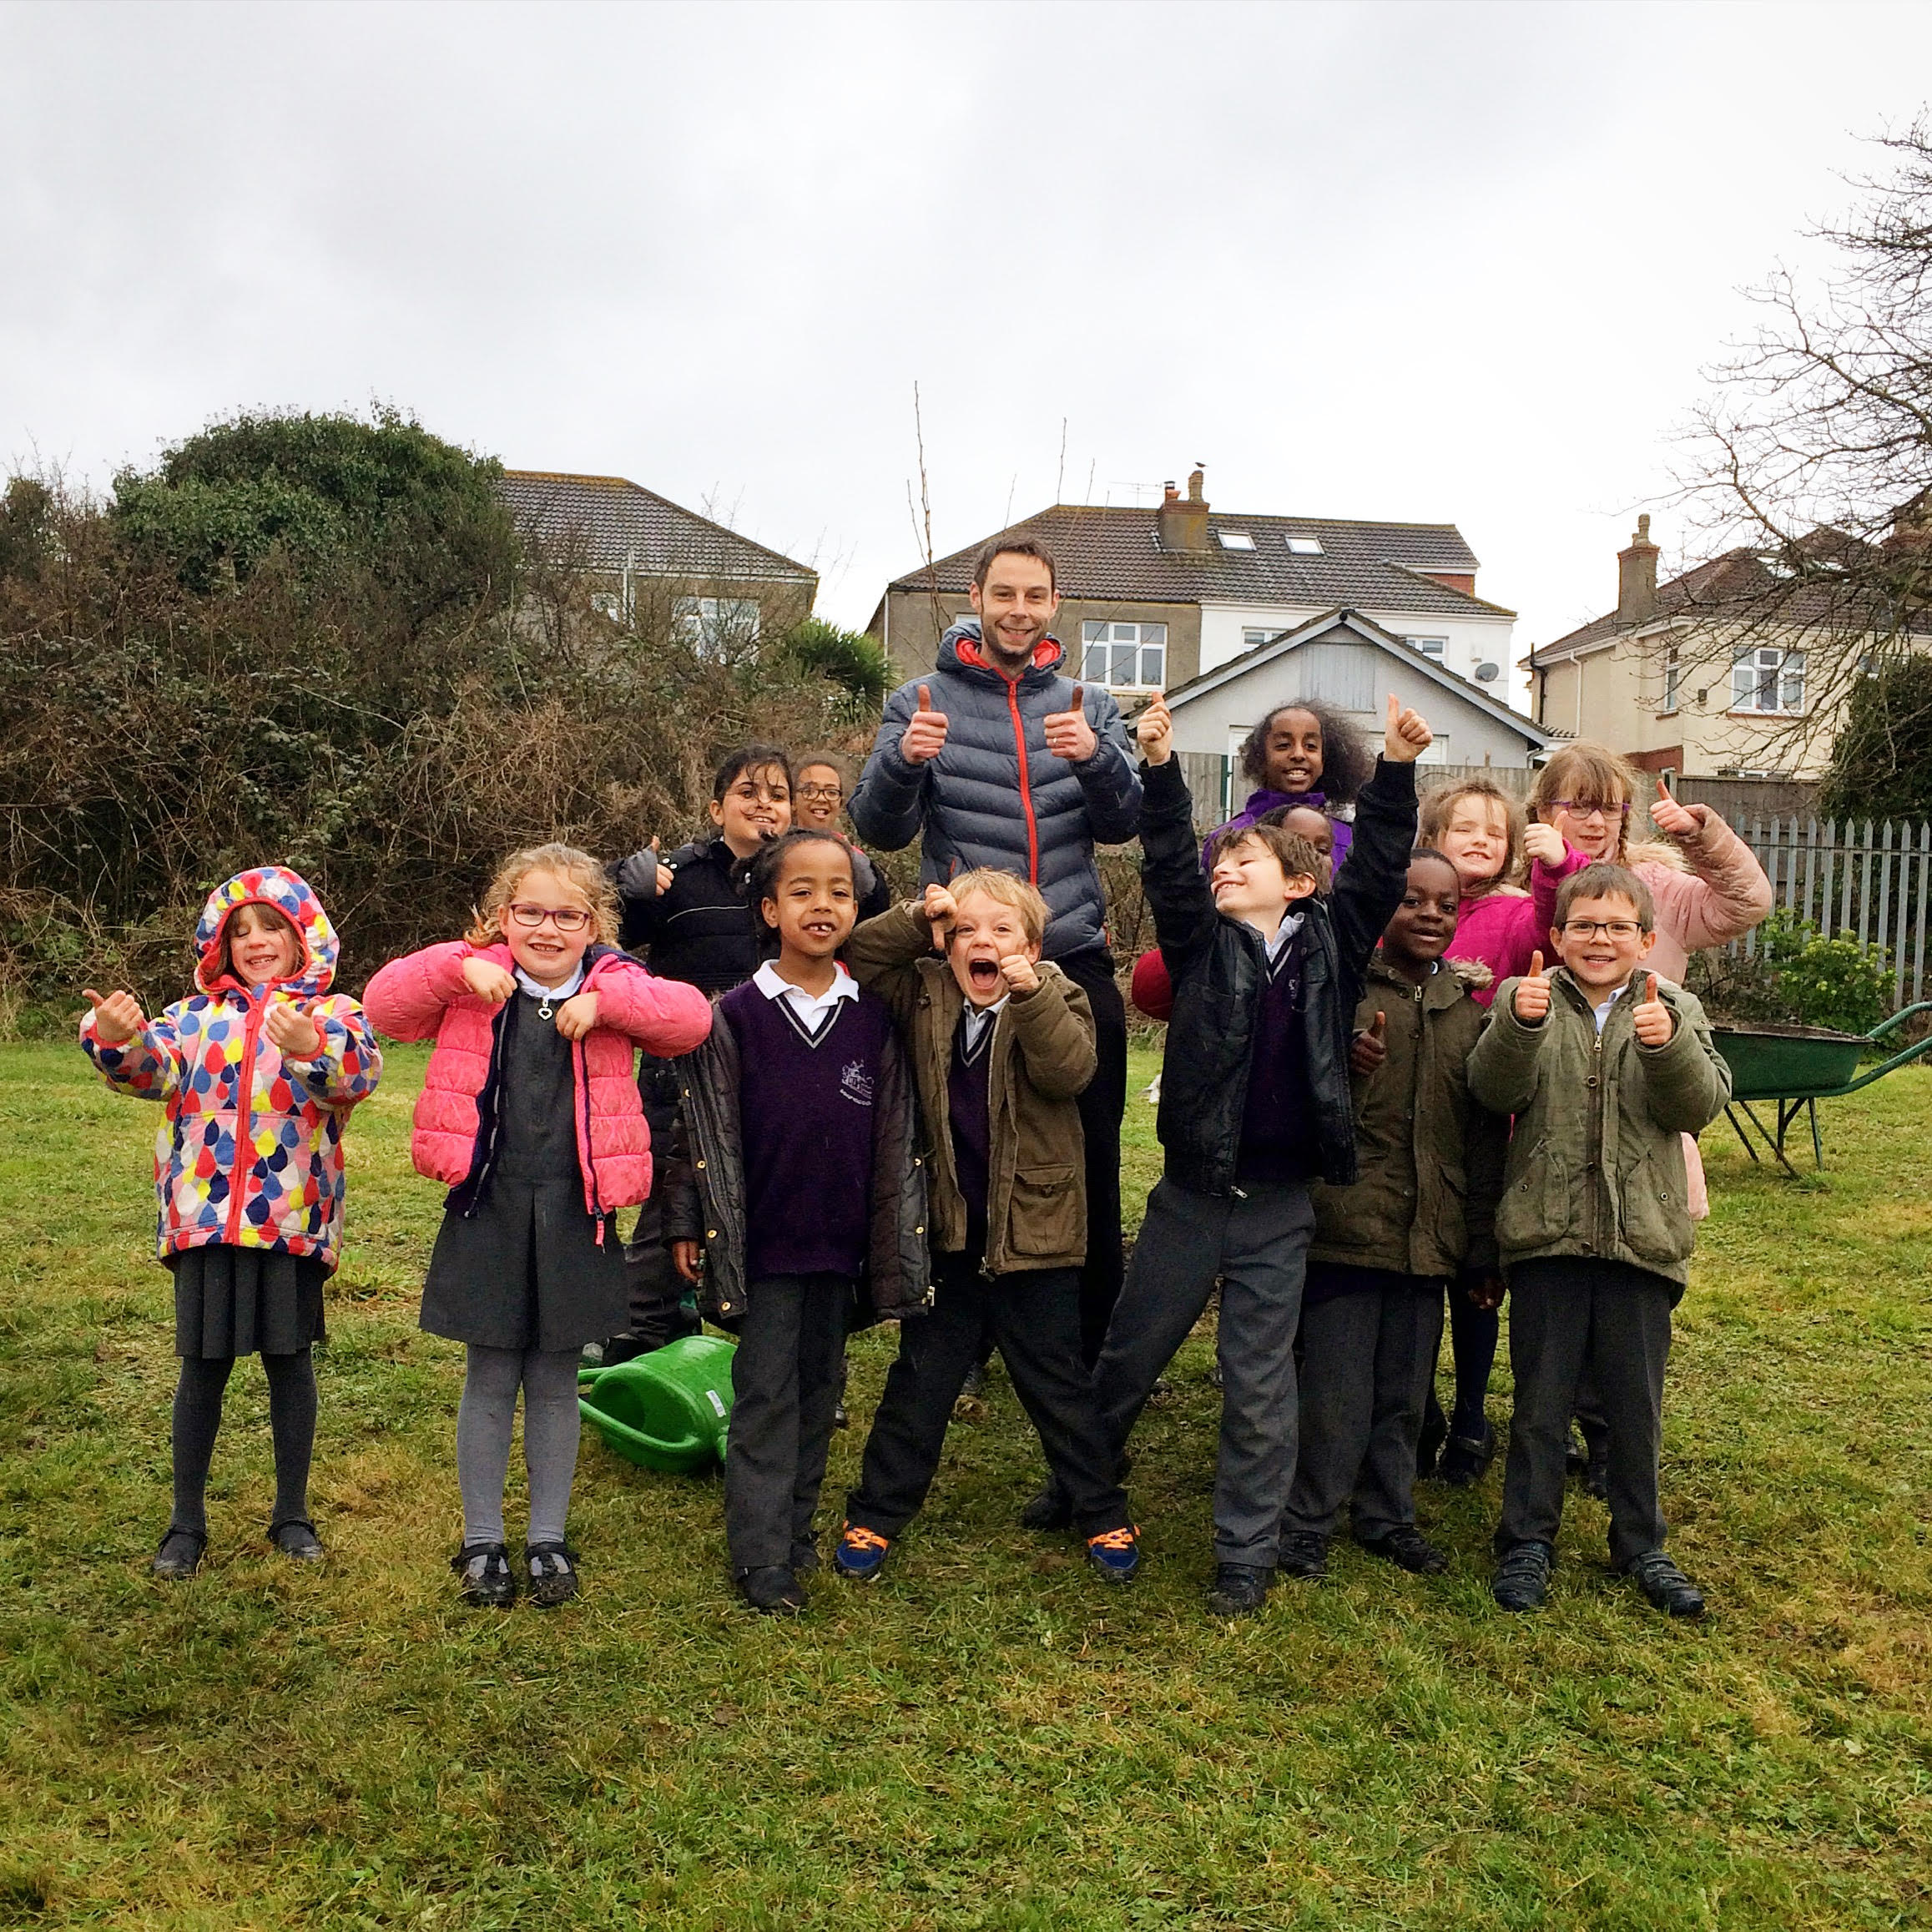 Bishop Rd school aims to raise £2,500 to fund vital green spaces for learning